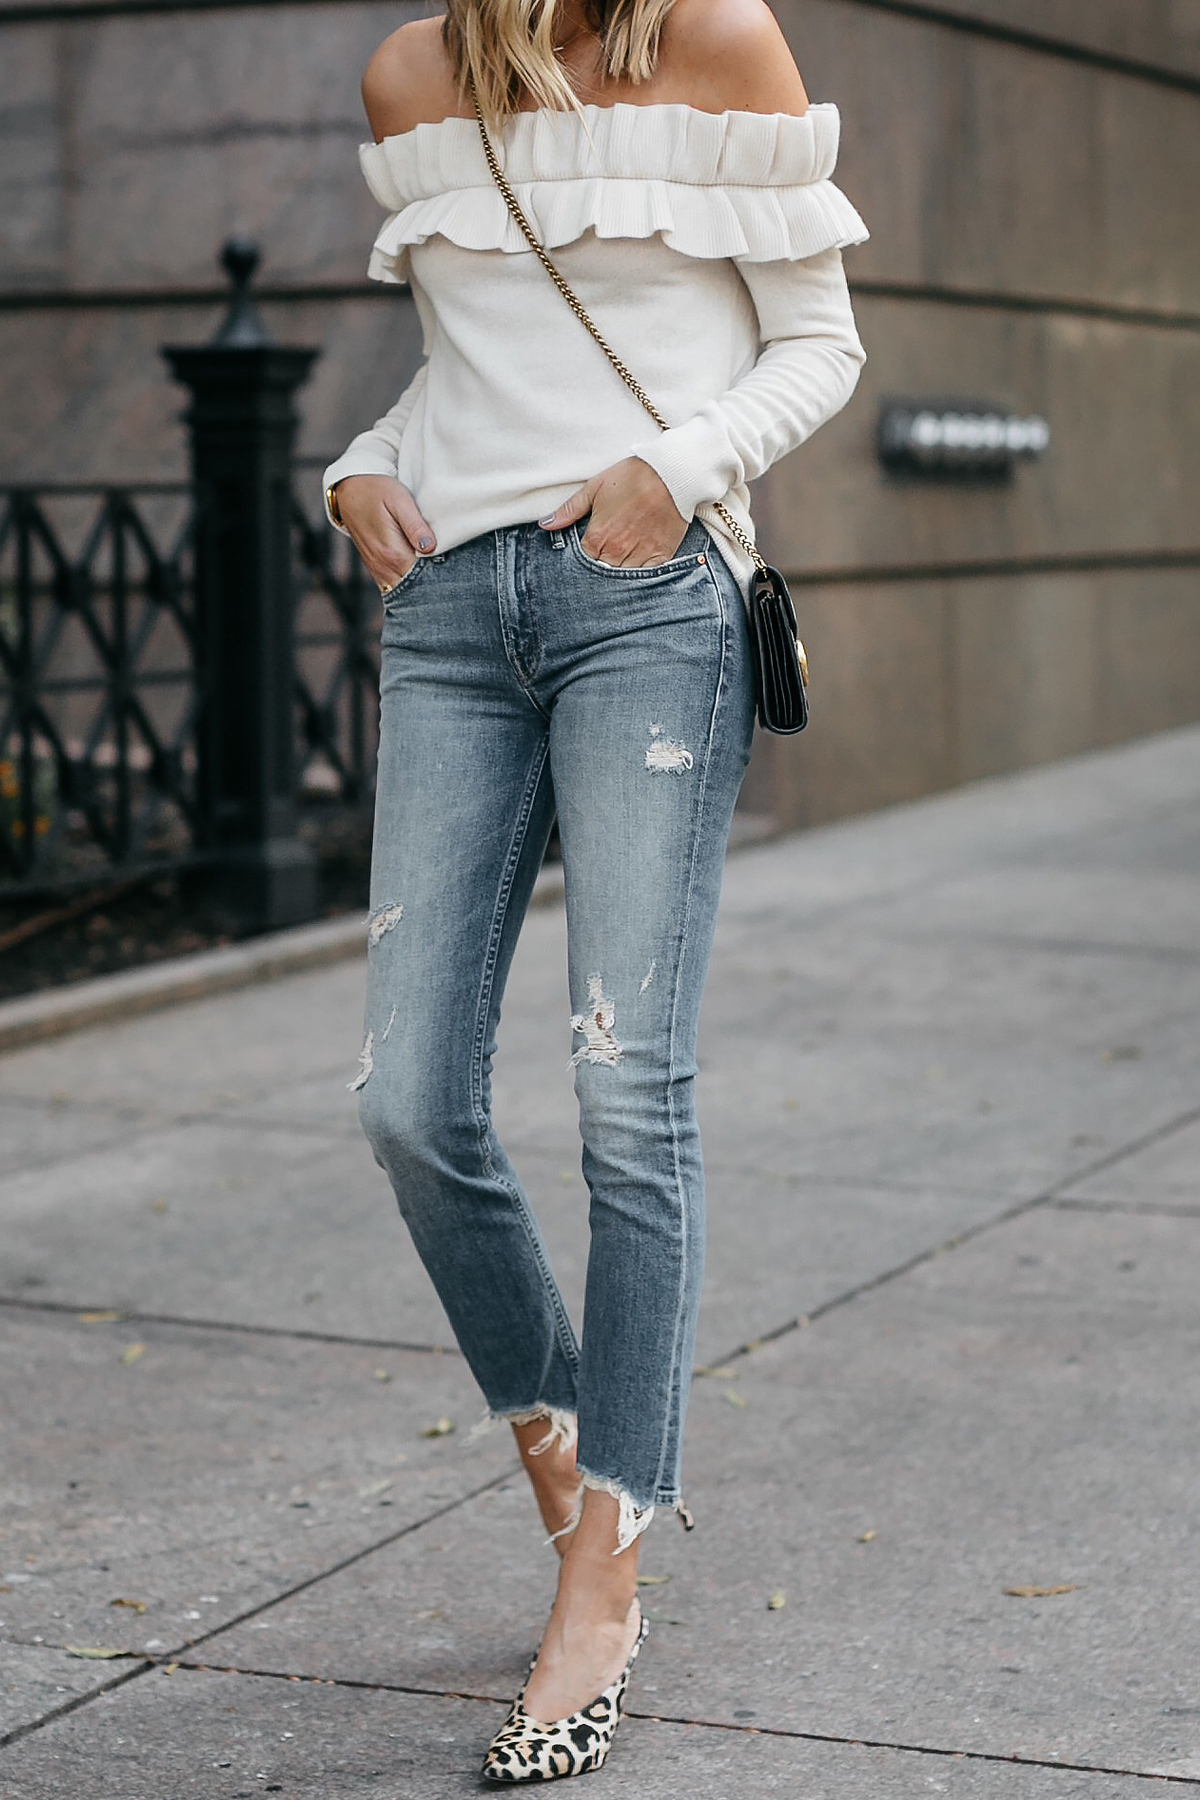 Club Monaco Ruffle Off-the-shoulder sweater Mother denim ripped jeans leopard heels Fashion Jackson Dallas Blogger Fashion Blogger Street Style